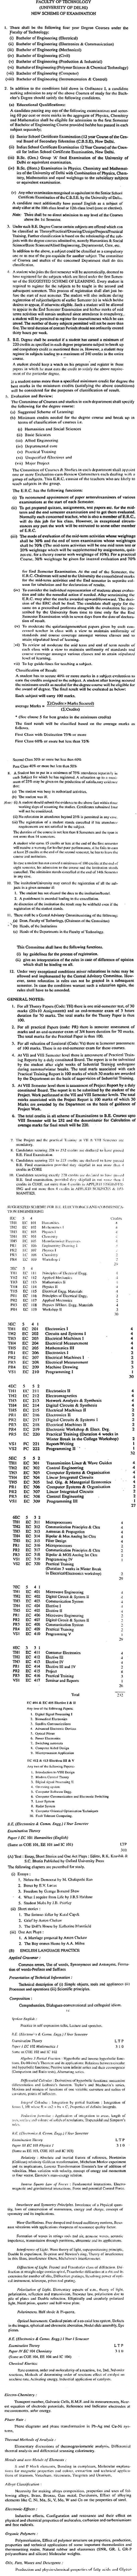 NSIT: Syllabus - Electronics & Communication Engineering